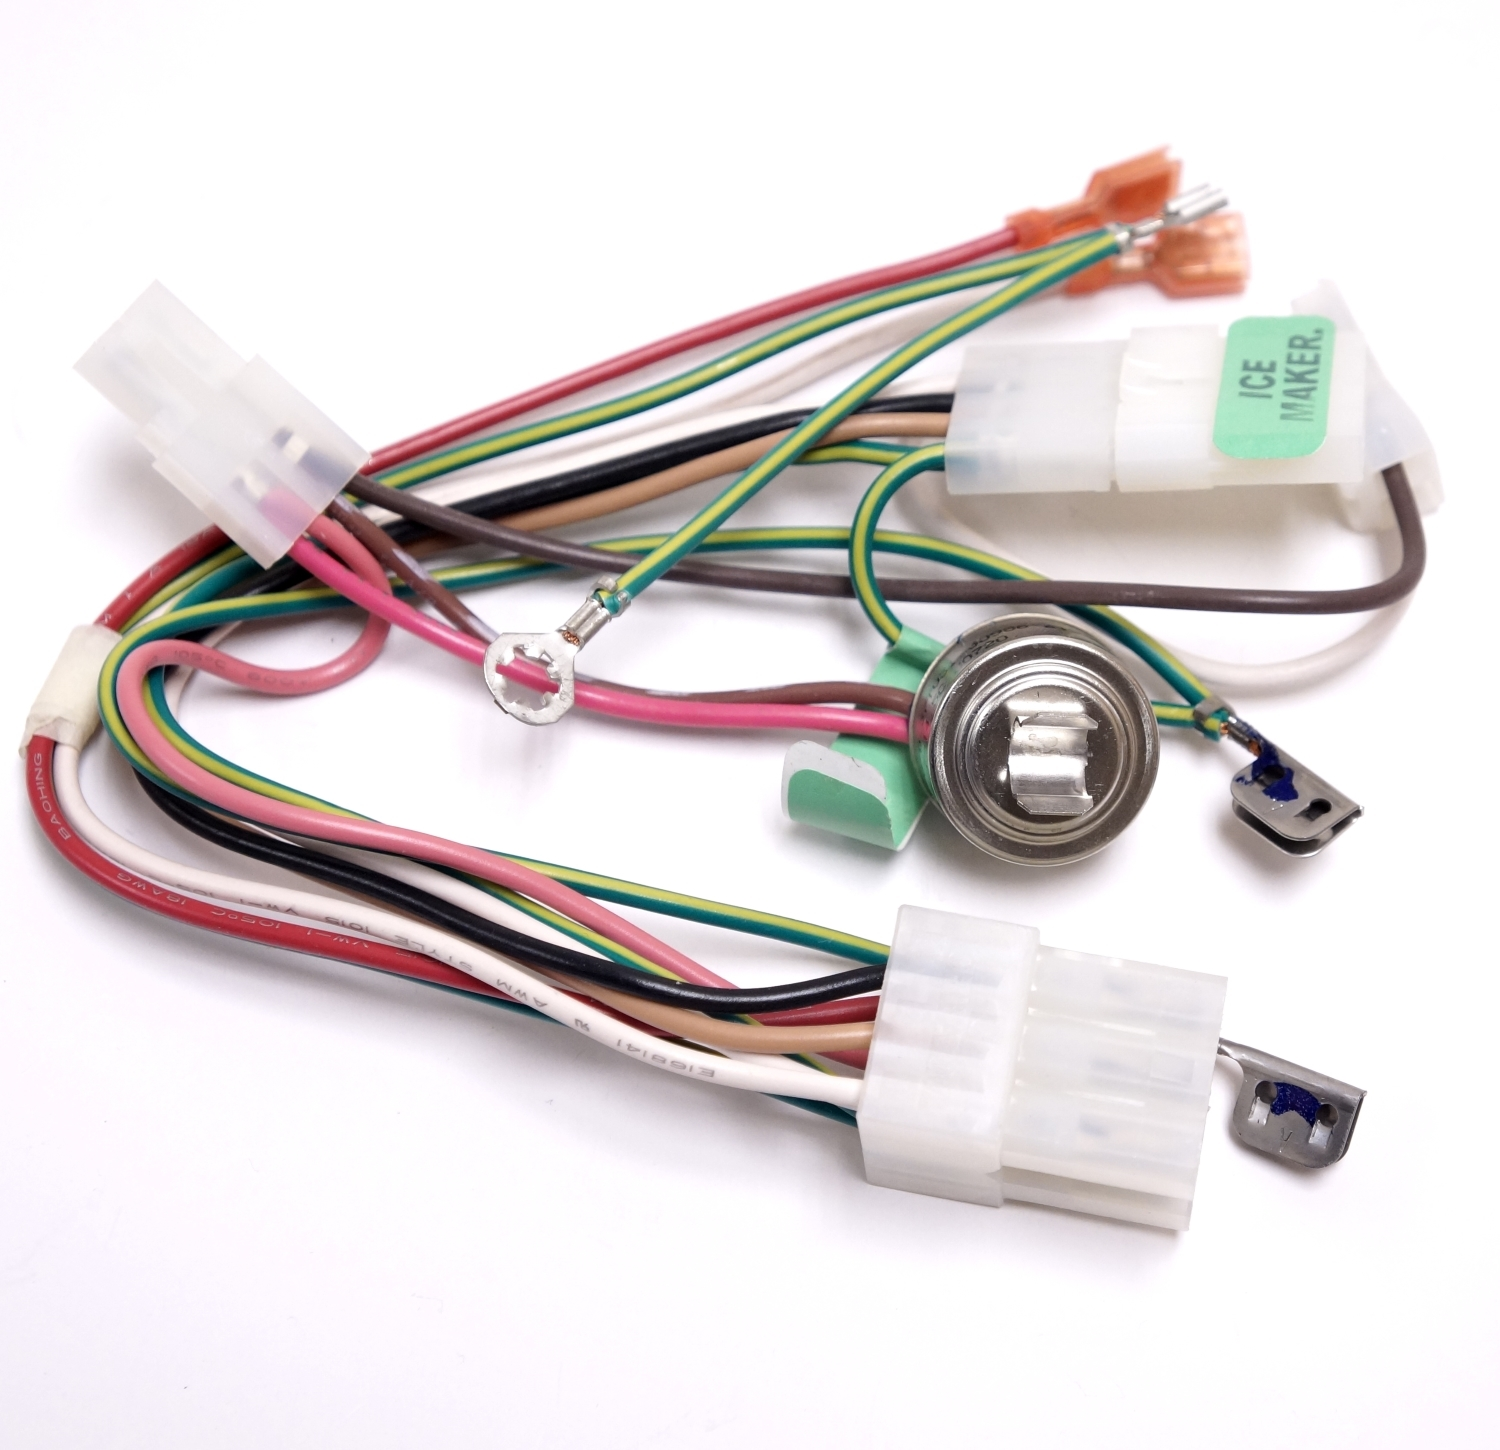 Whirlpool WP2192096 Freezer Wire Harness on cable harness, radio harness, engine harness, nakamichi harness, suspension harness, amp bypass harness, electrical harness, safety harness, oxygen sensor extension harness, battery harness, maxi-seal harness, dog harness, pet harness, obd0 to obd1 conversion harness, alpine stereo harness, fall protection harness, pony harness,